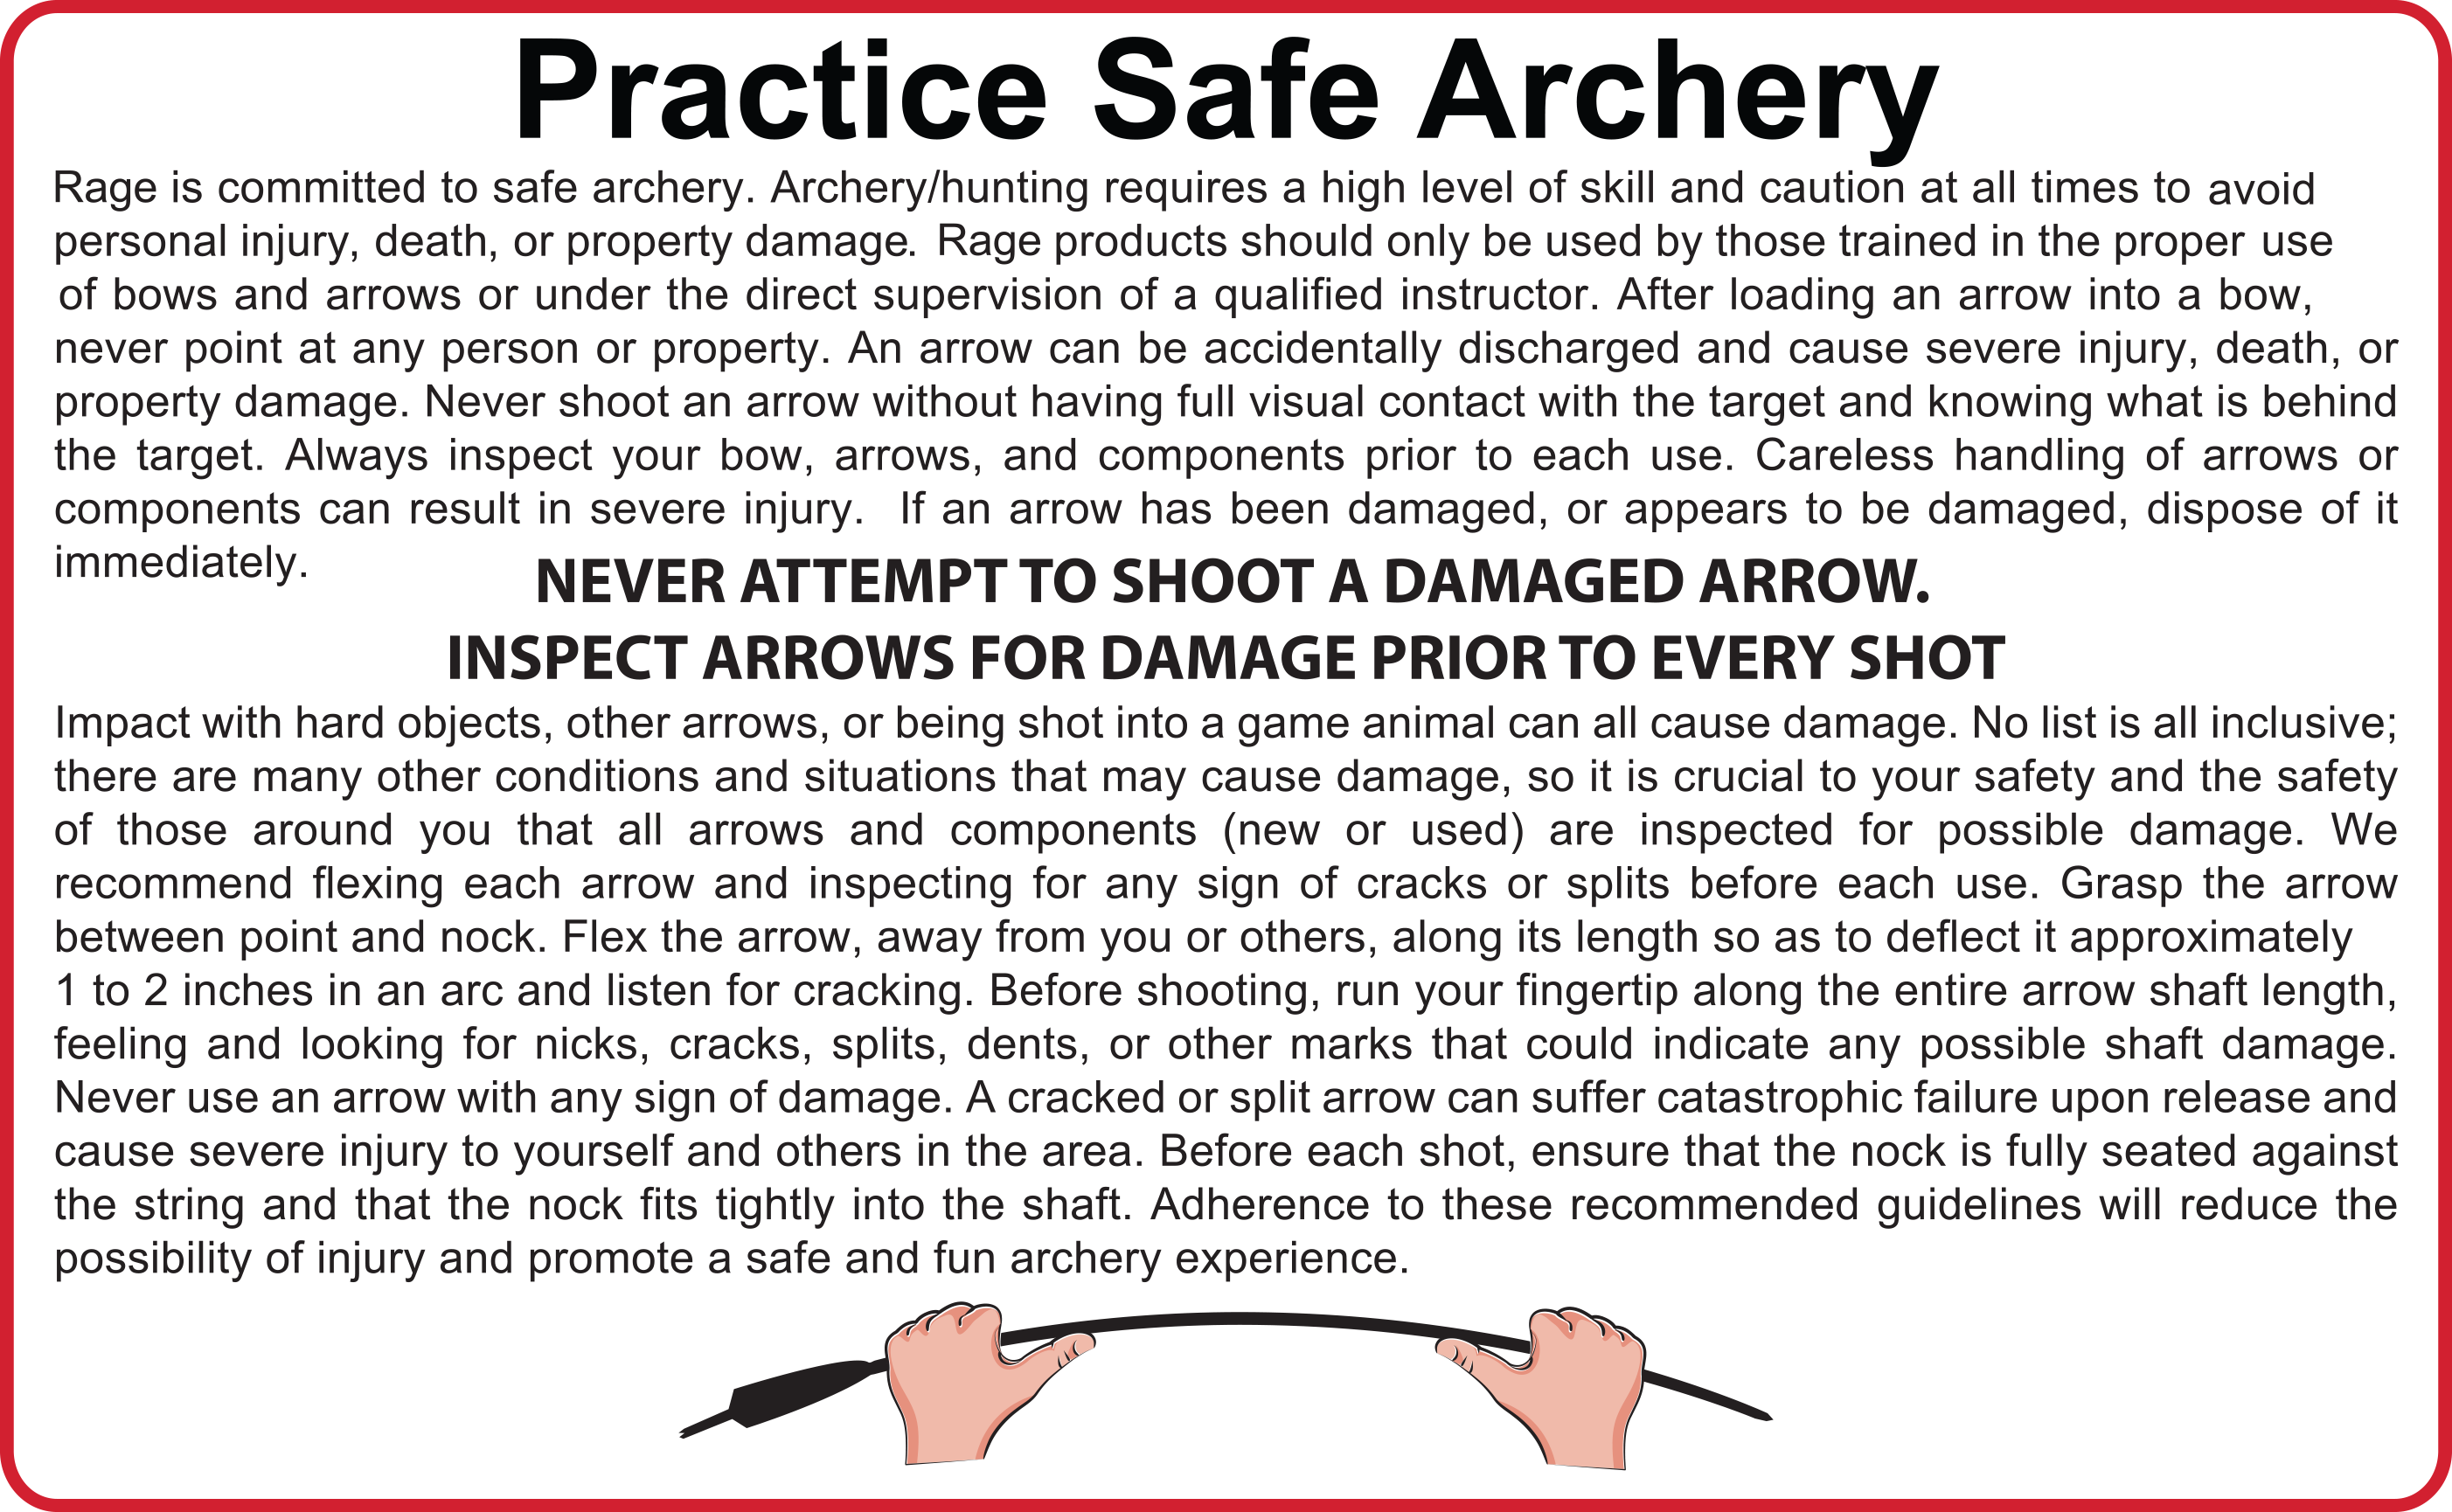 Archery Safe Practices from Rage Broadheads